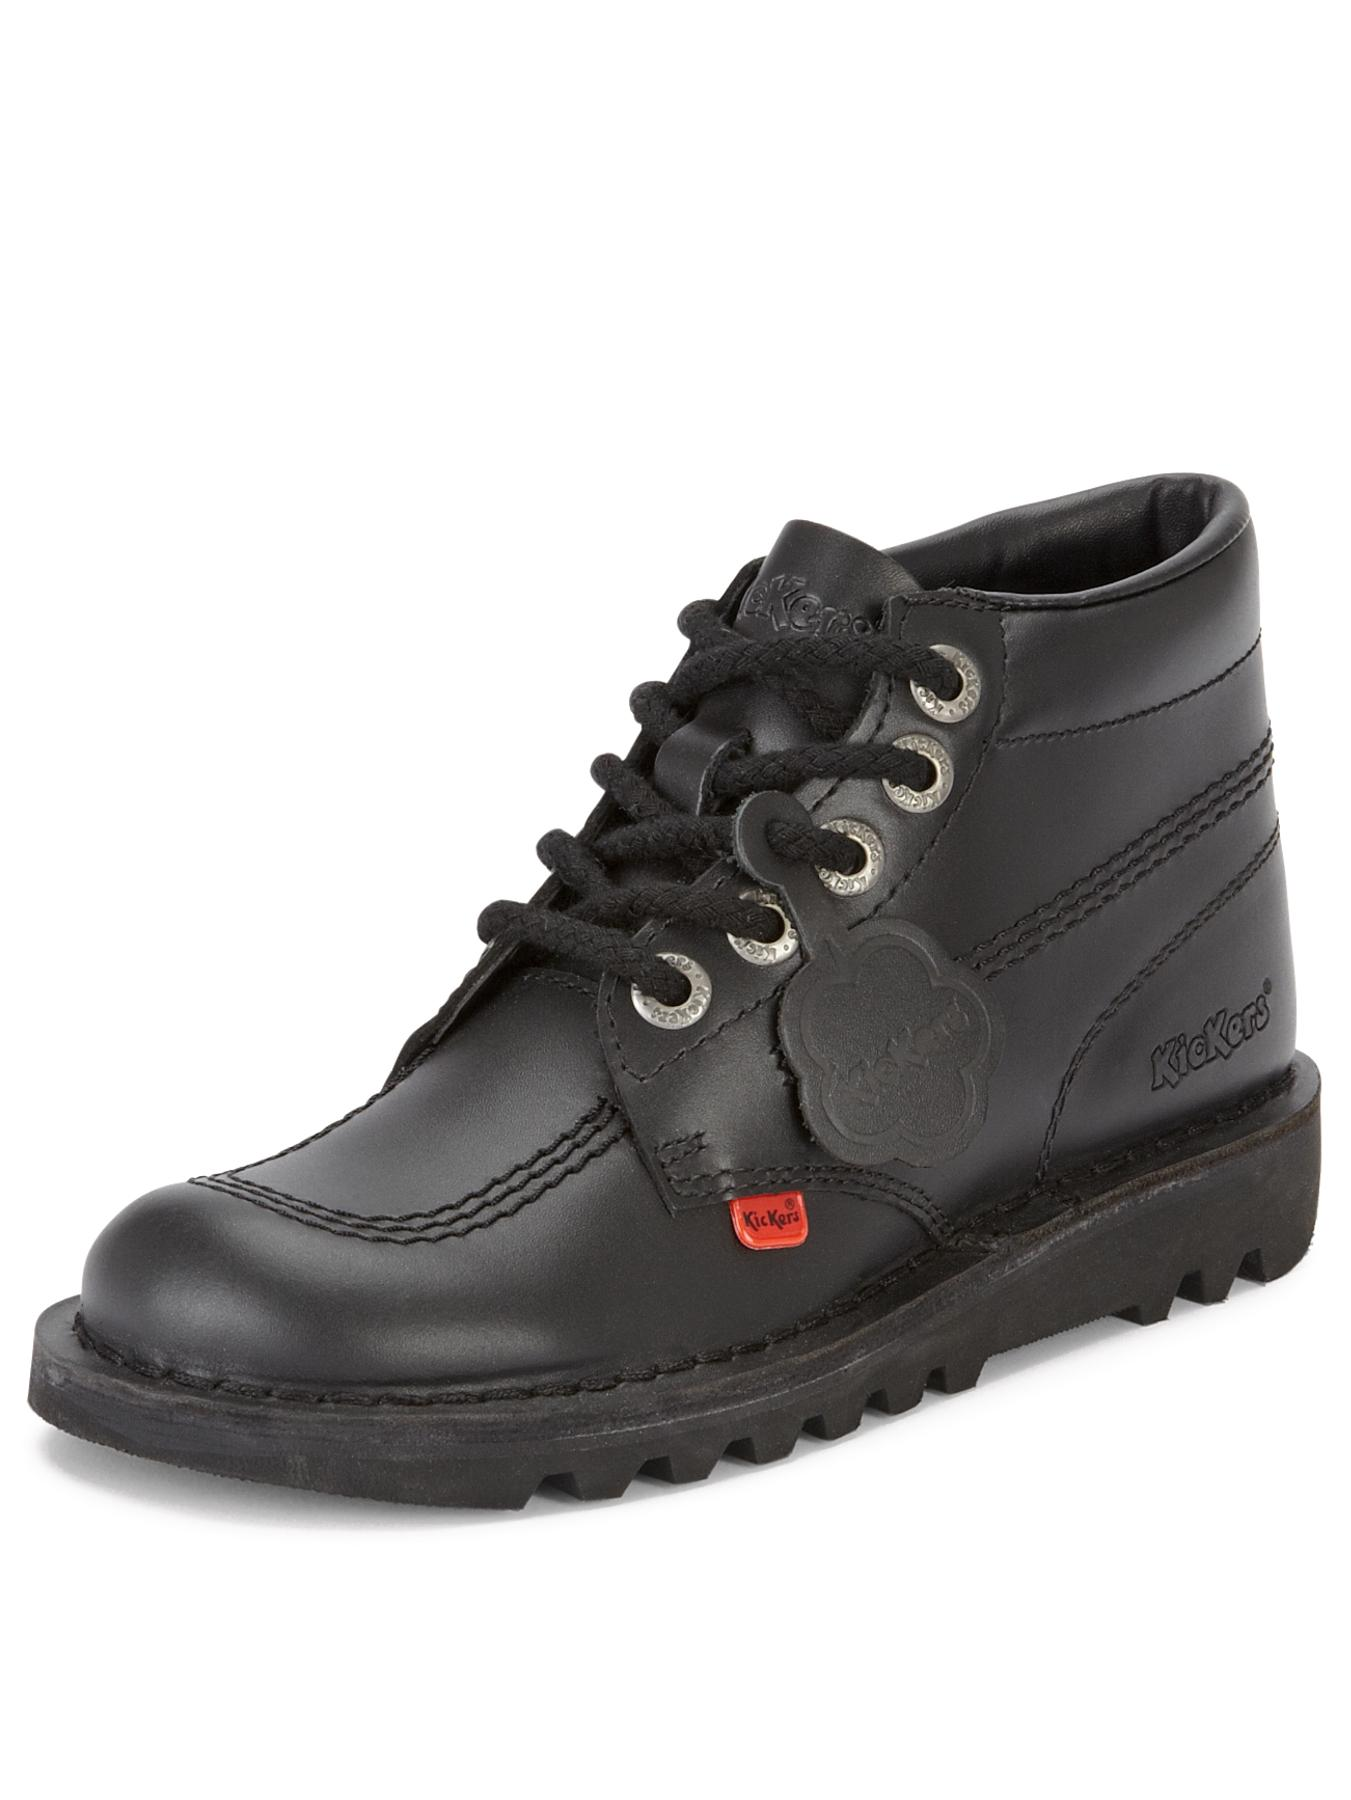 Kick Hi Core Boots, Black